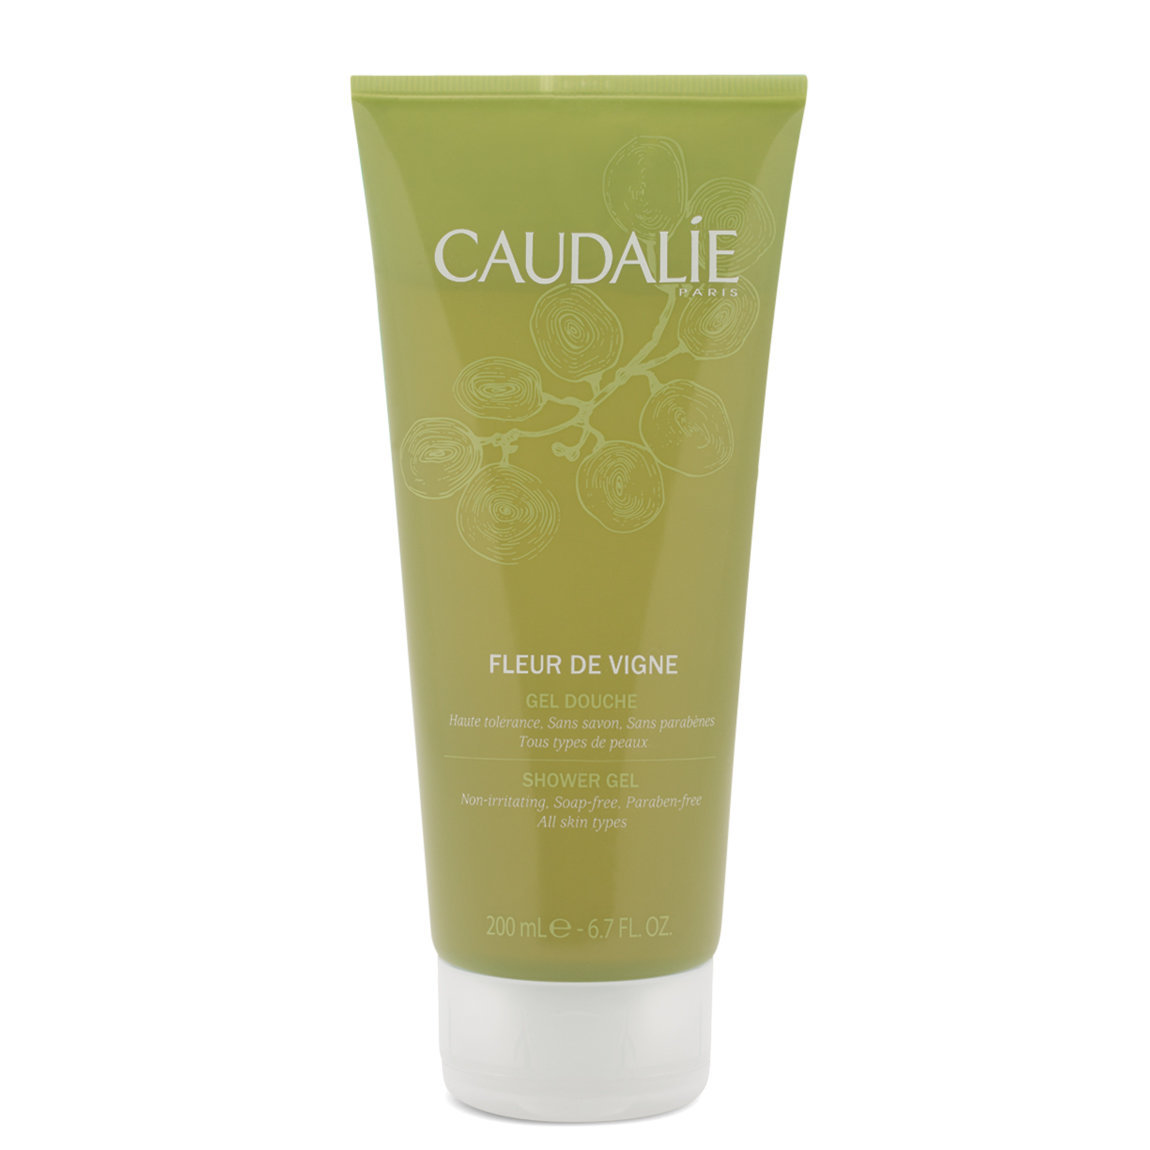 Caudalie Fleur De Vigne Shower Gel product swatch.